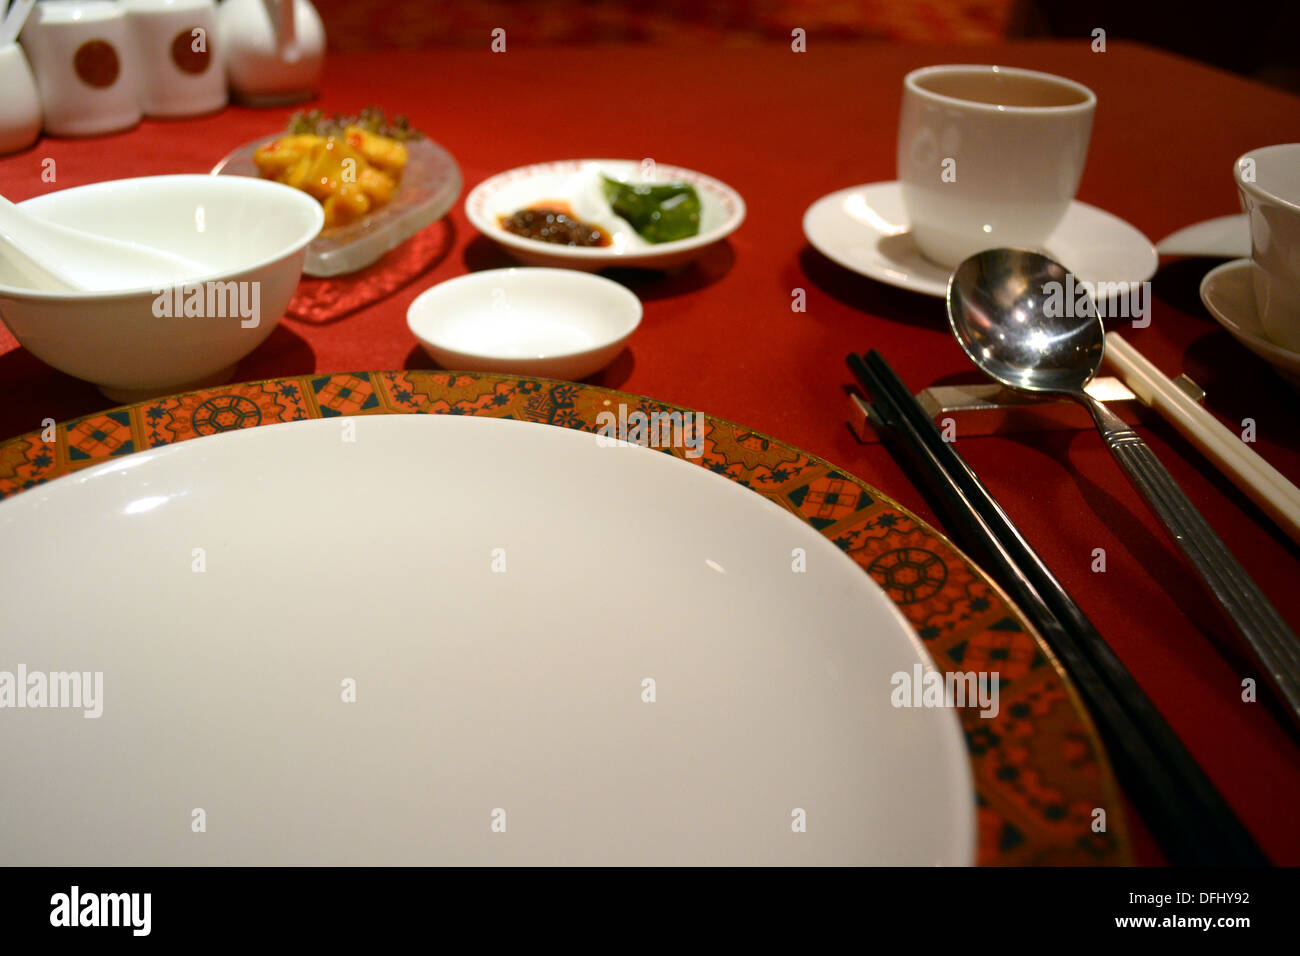 The table setting of a Chinese restaurant & The table setting of a Chinese restaurant Stock Photo: 61245550 - Alamy